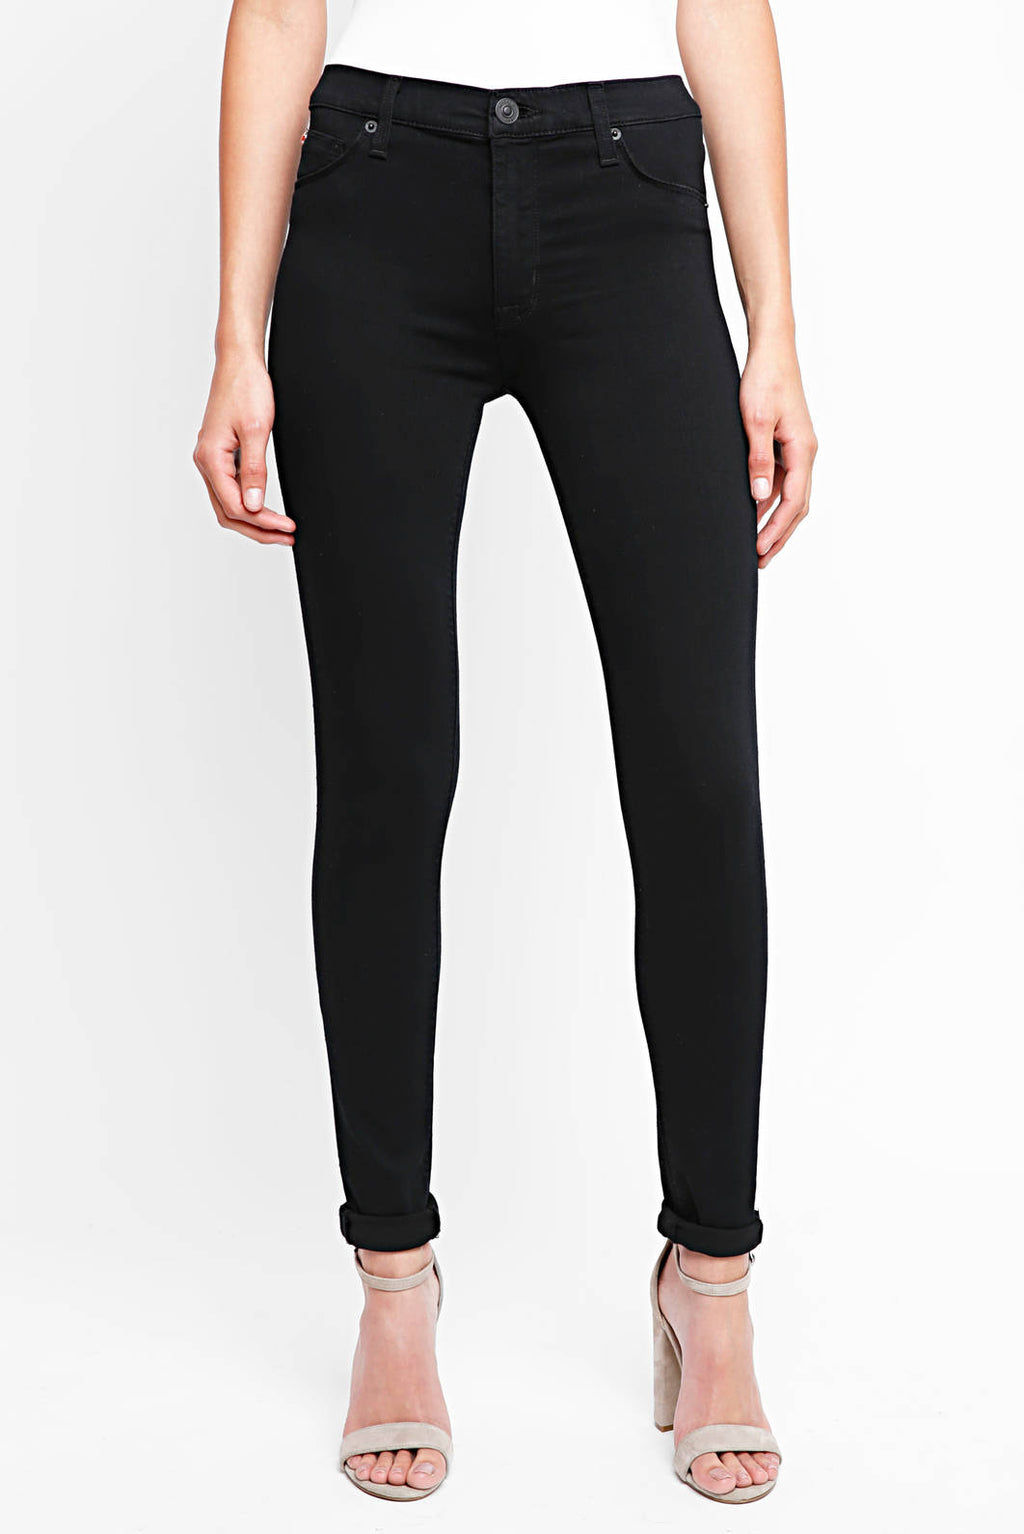 LAST CALL SIZE 25 | Midrise Super Skinny Denim in Black